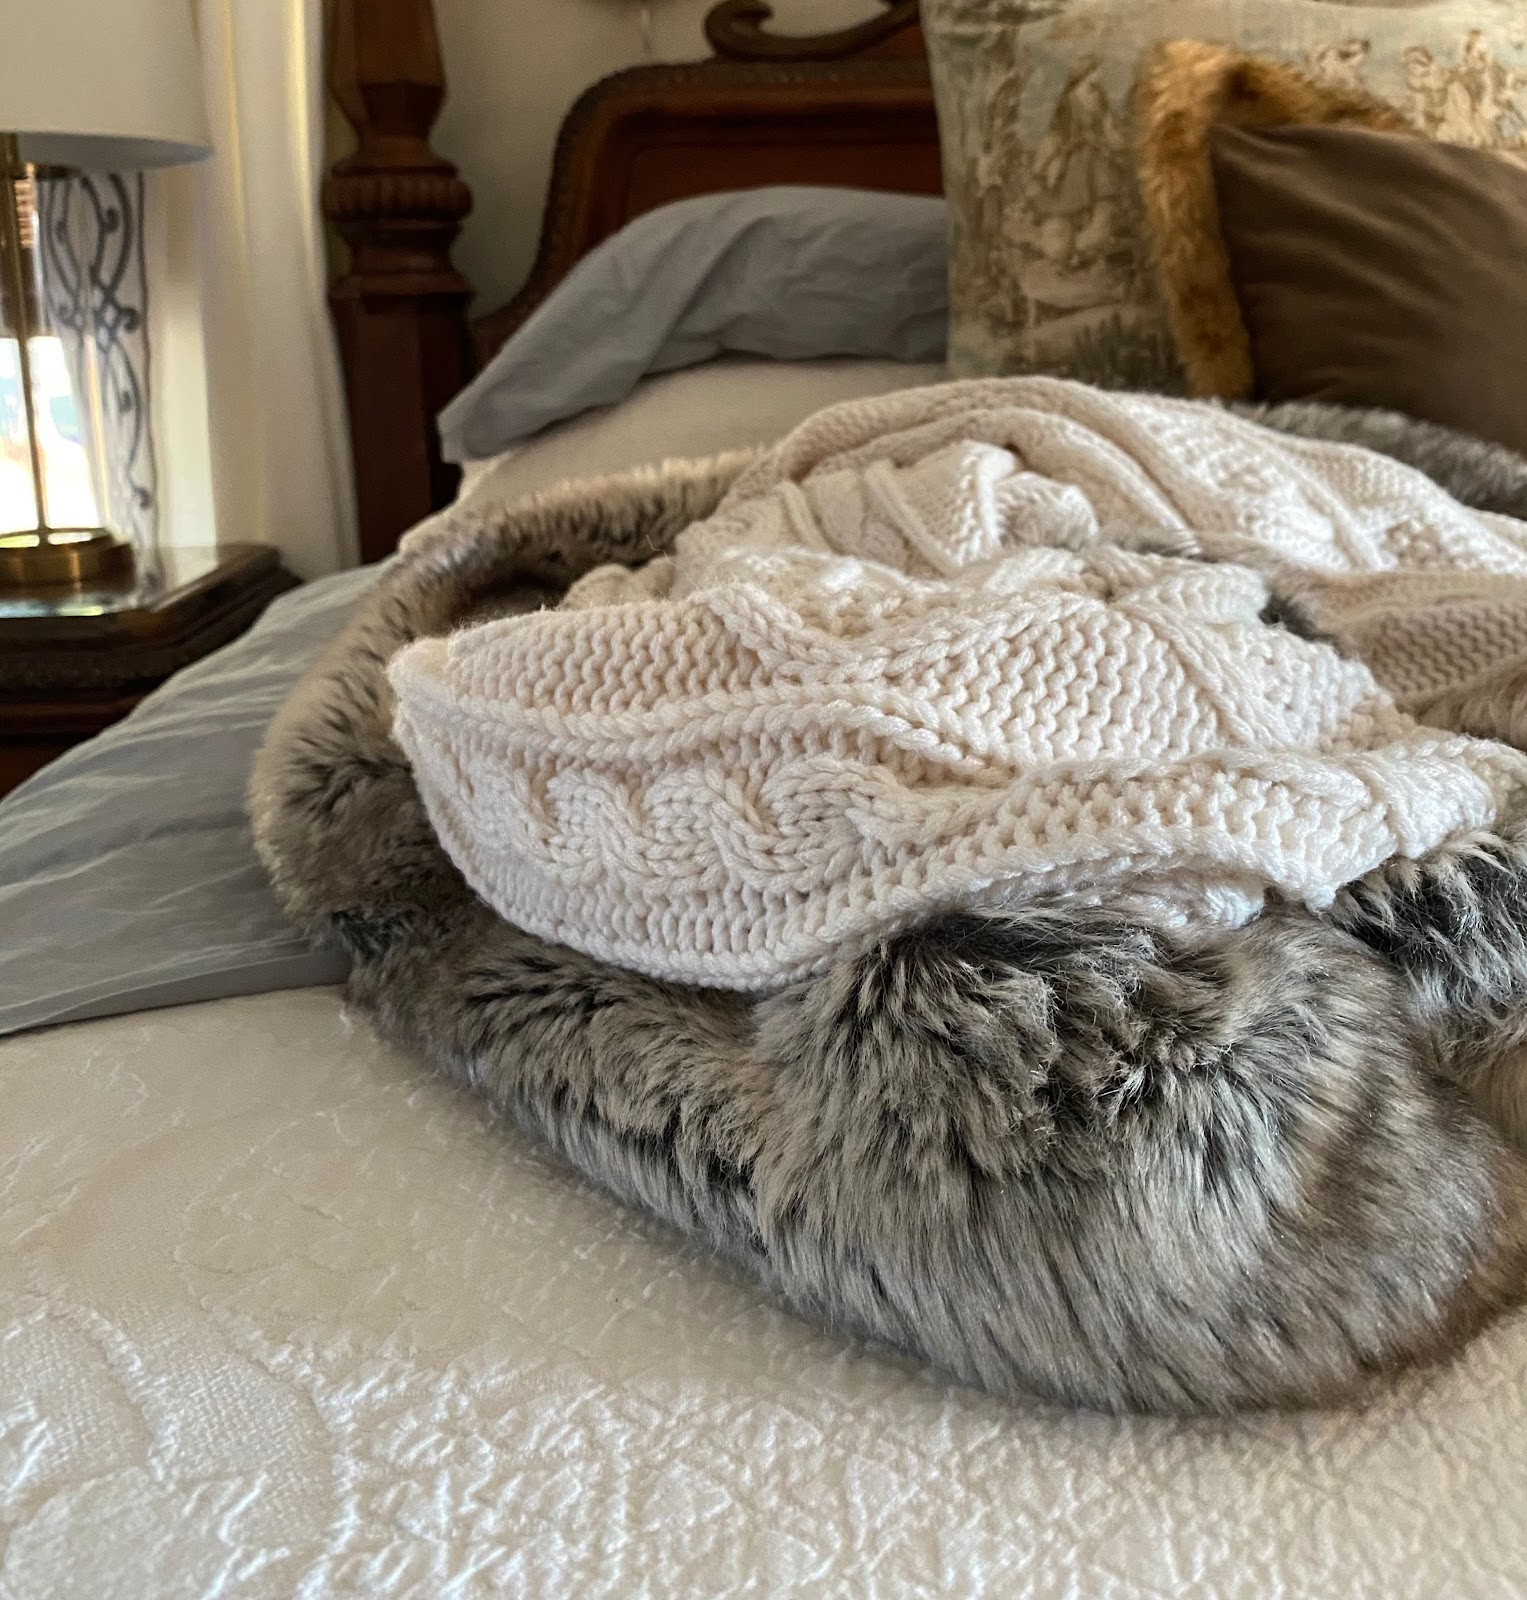 thick blankets knit faux fur boll & branch sheets pillow